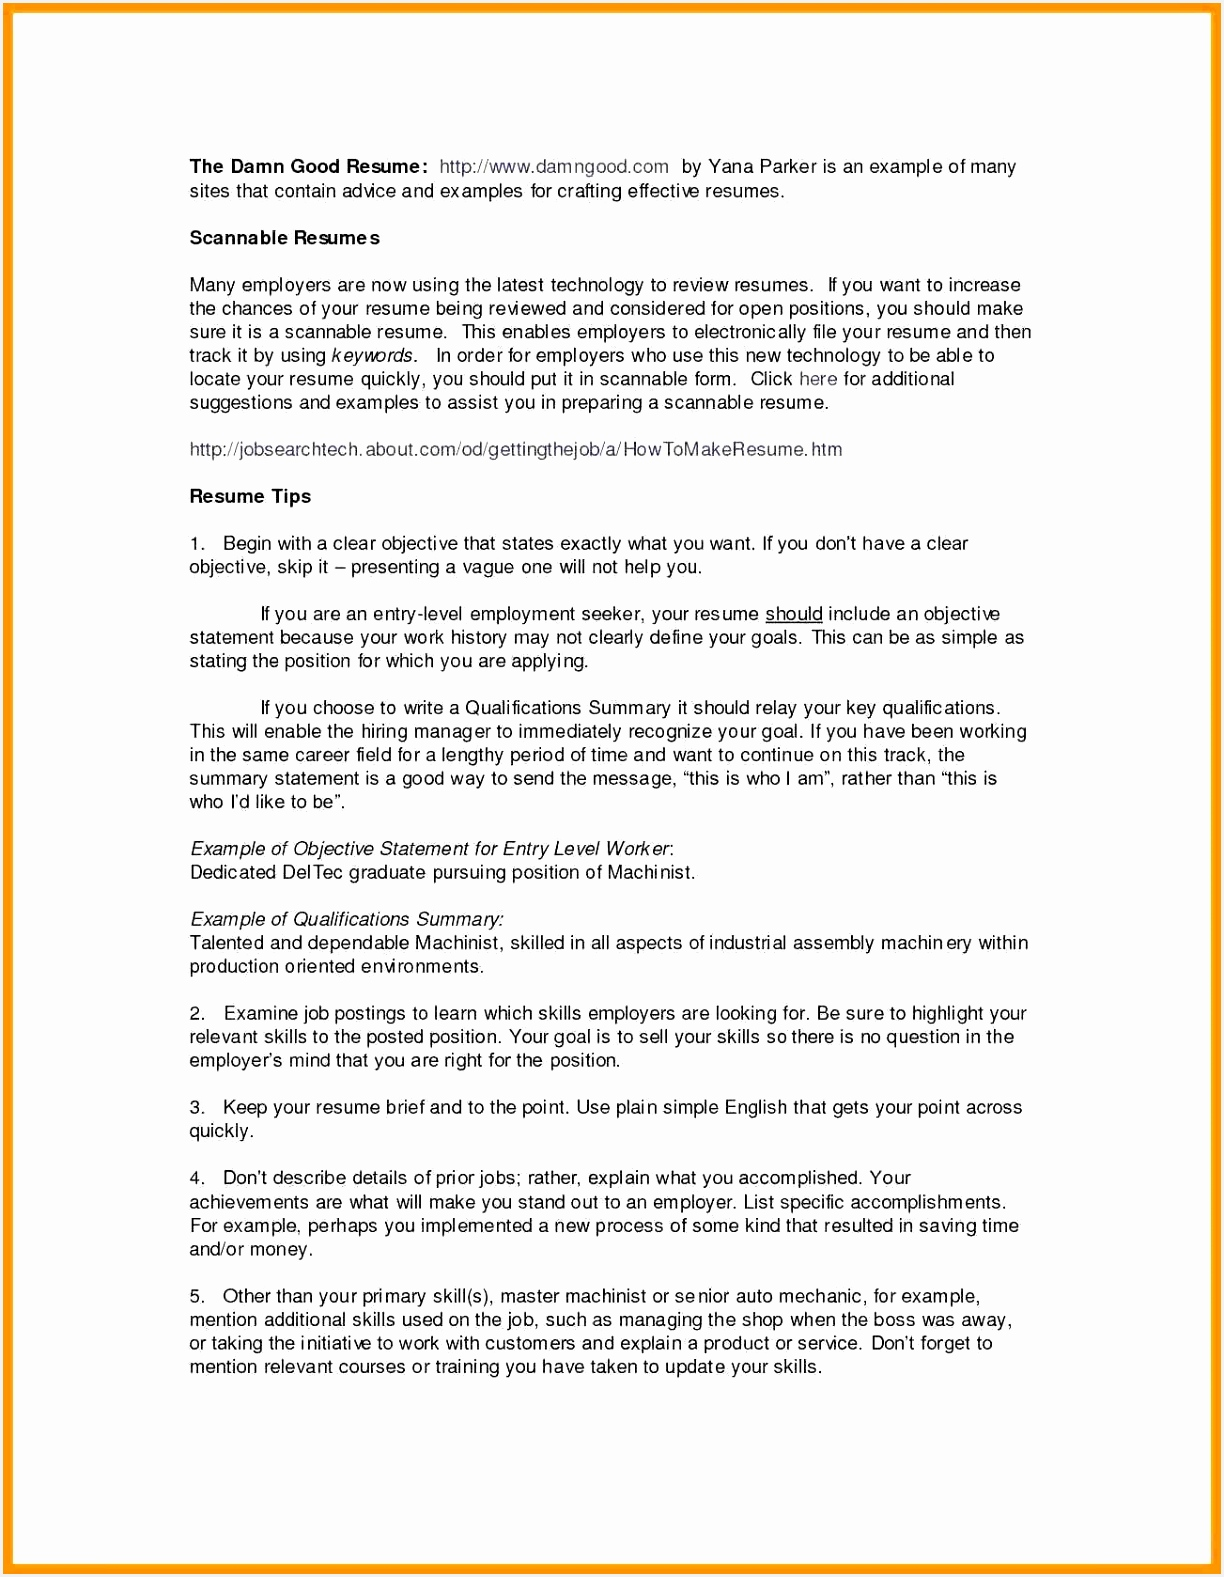 Resume Templates for software Engineer Udq4d Fresh 32 Best software Engineer Resume Resume Template Online Of 6 Resume Templates for software Engineer